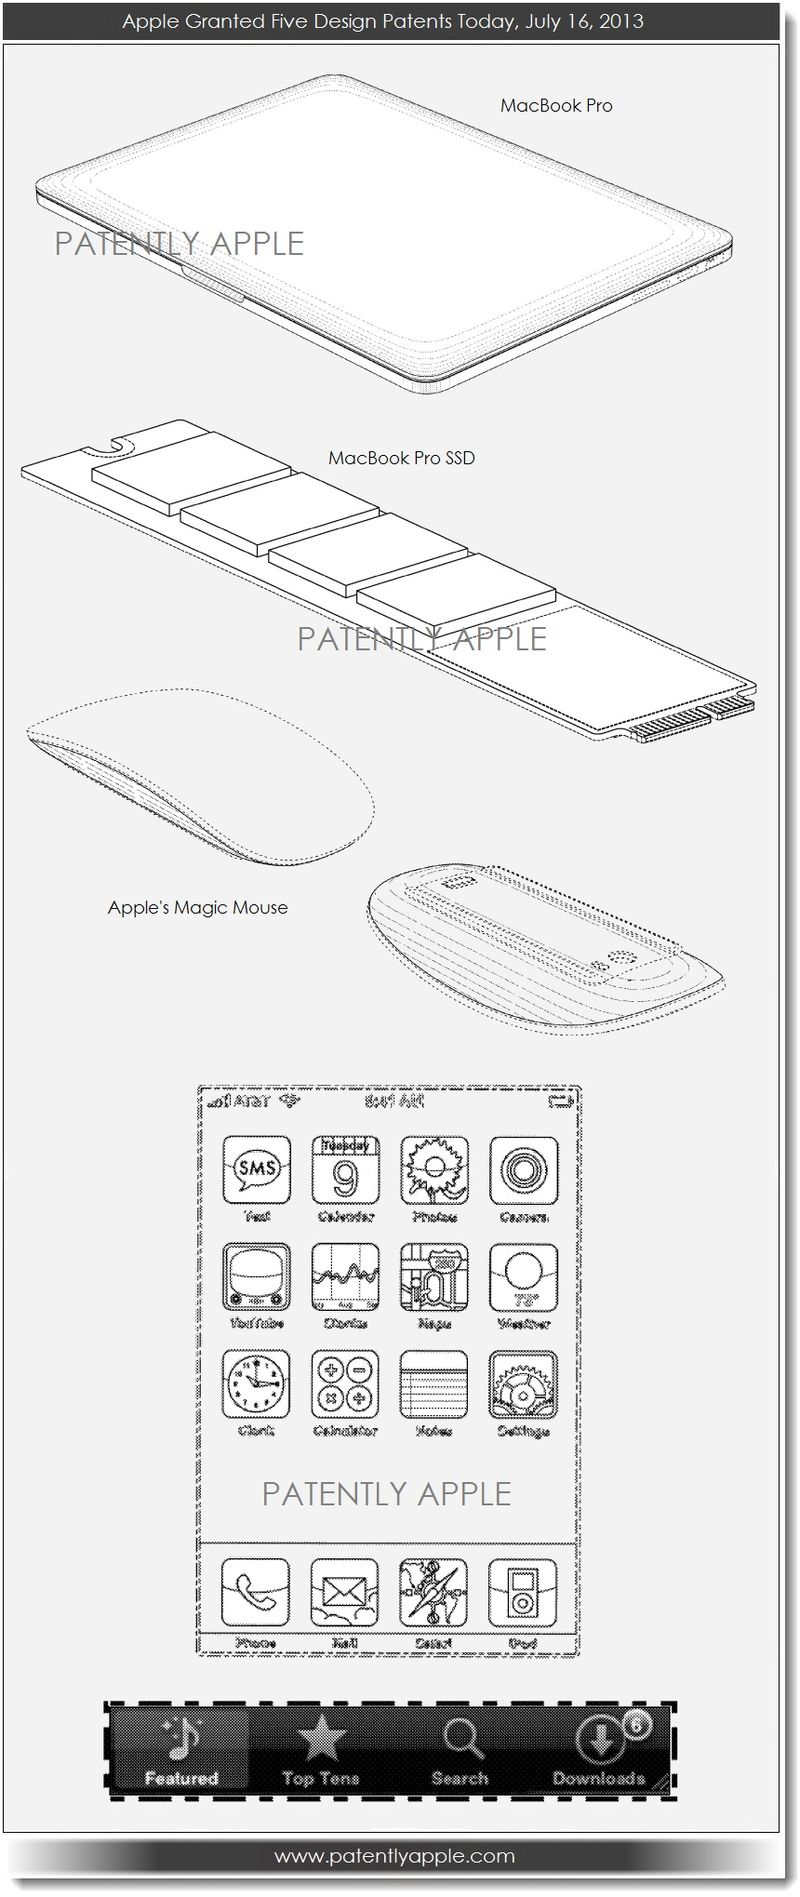 3. Apple Granted 5 Design Patents, July 16, 2013